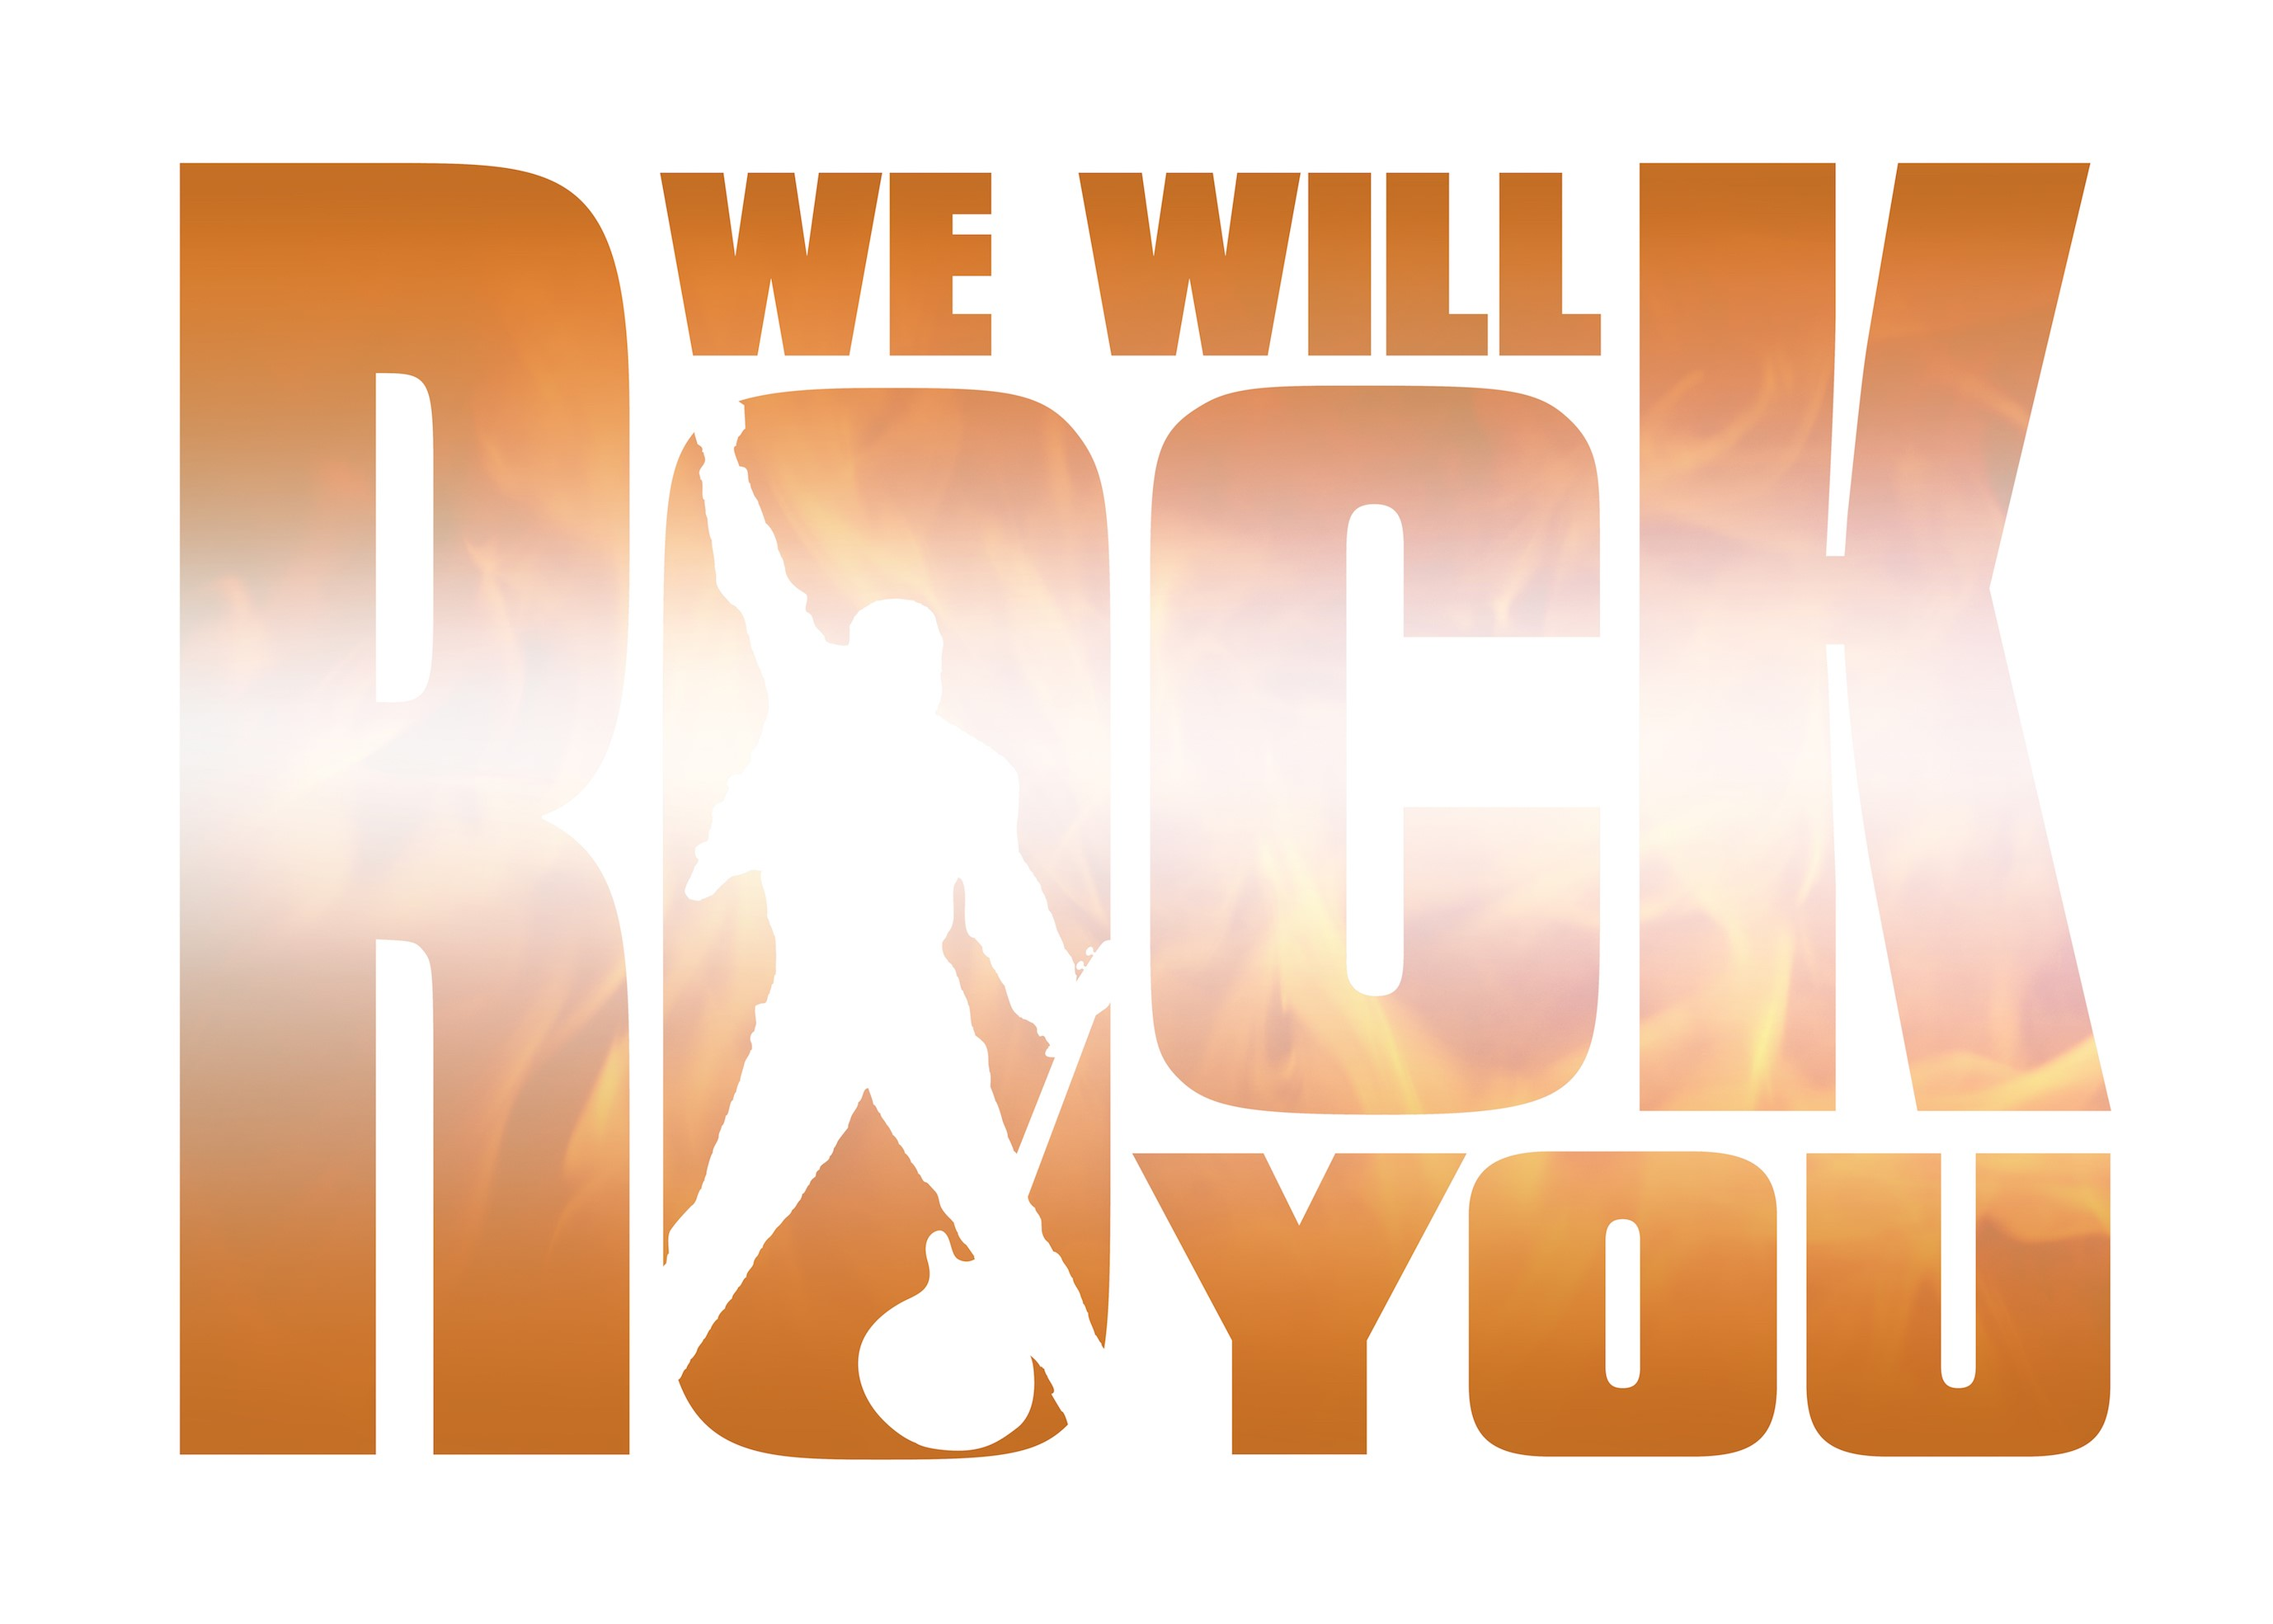 AUDIZIONI PER LA PRODUZIONE EUROPEA DI WE WILL ROCK YOU